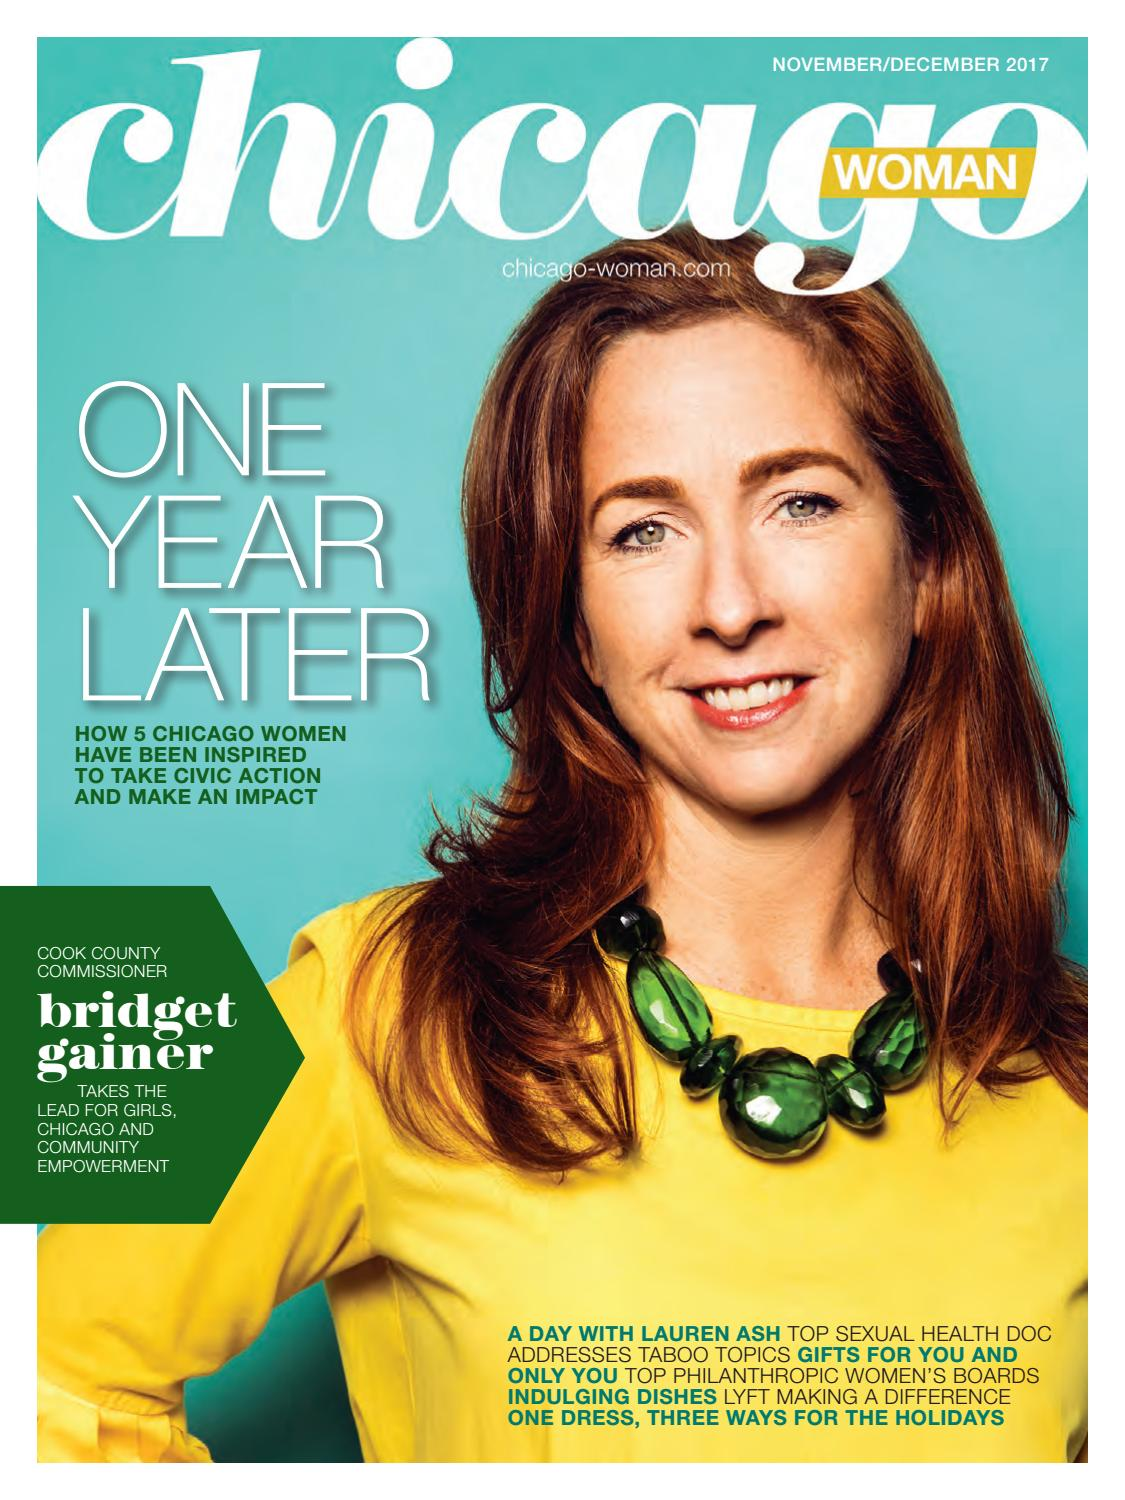 Chicago Woman November/December 2017 by chicago-woman - issuu